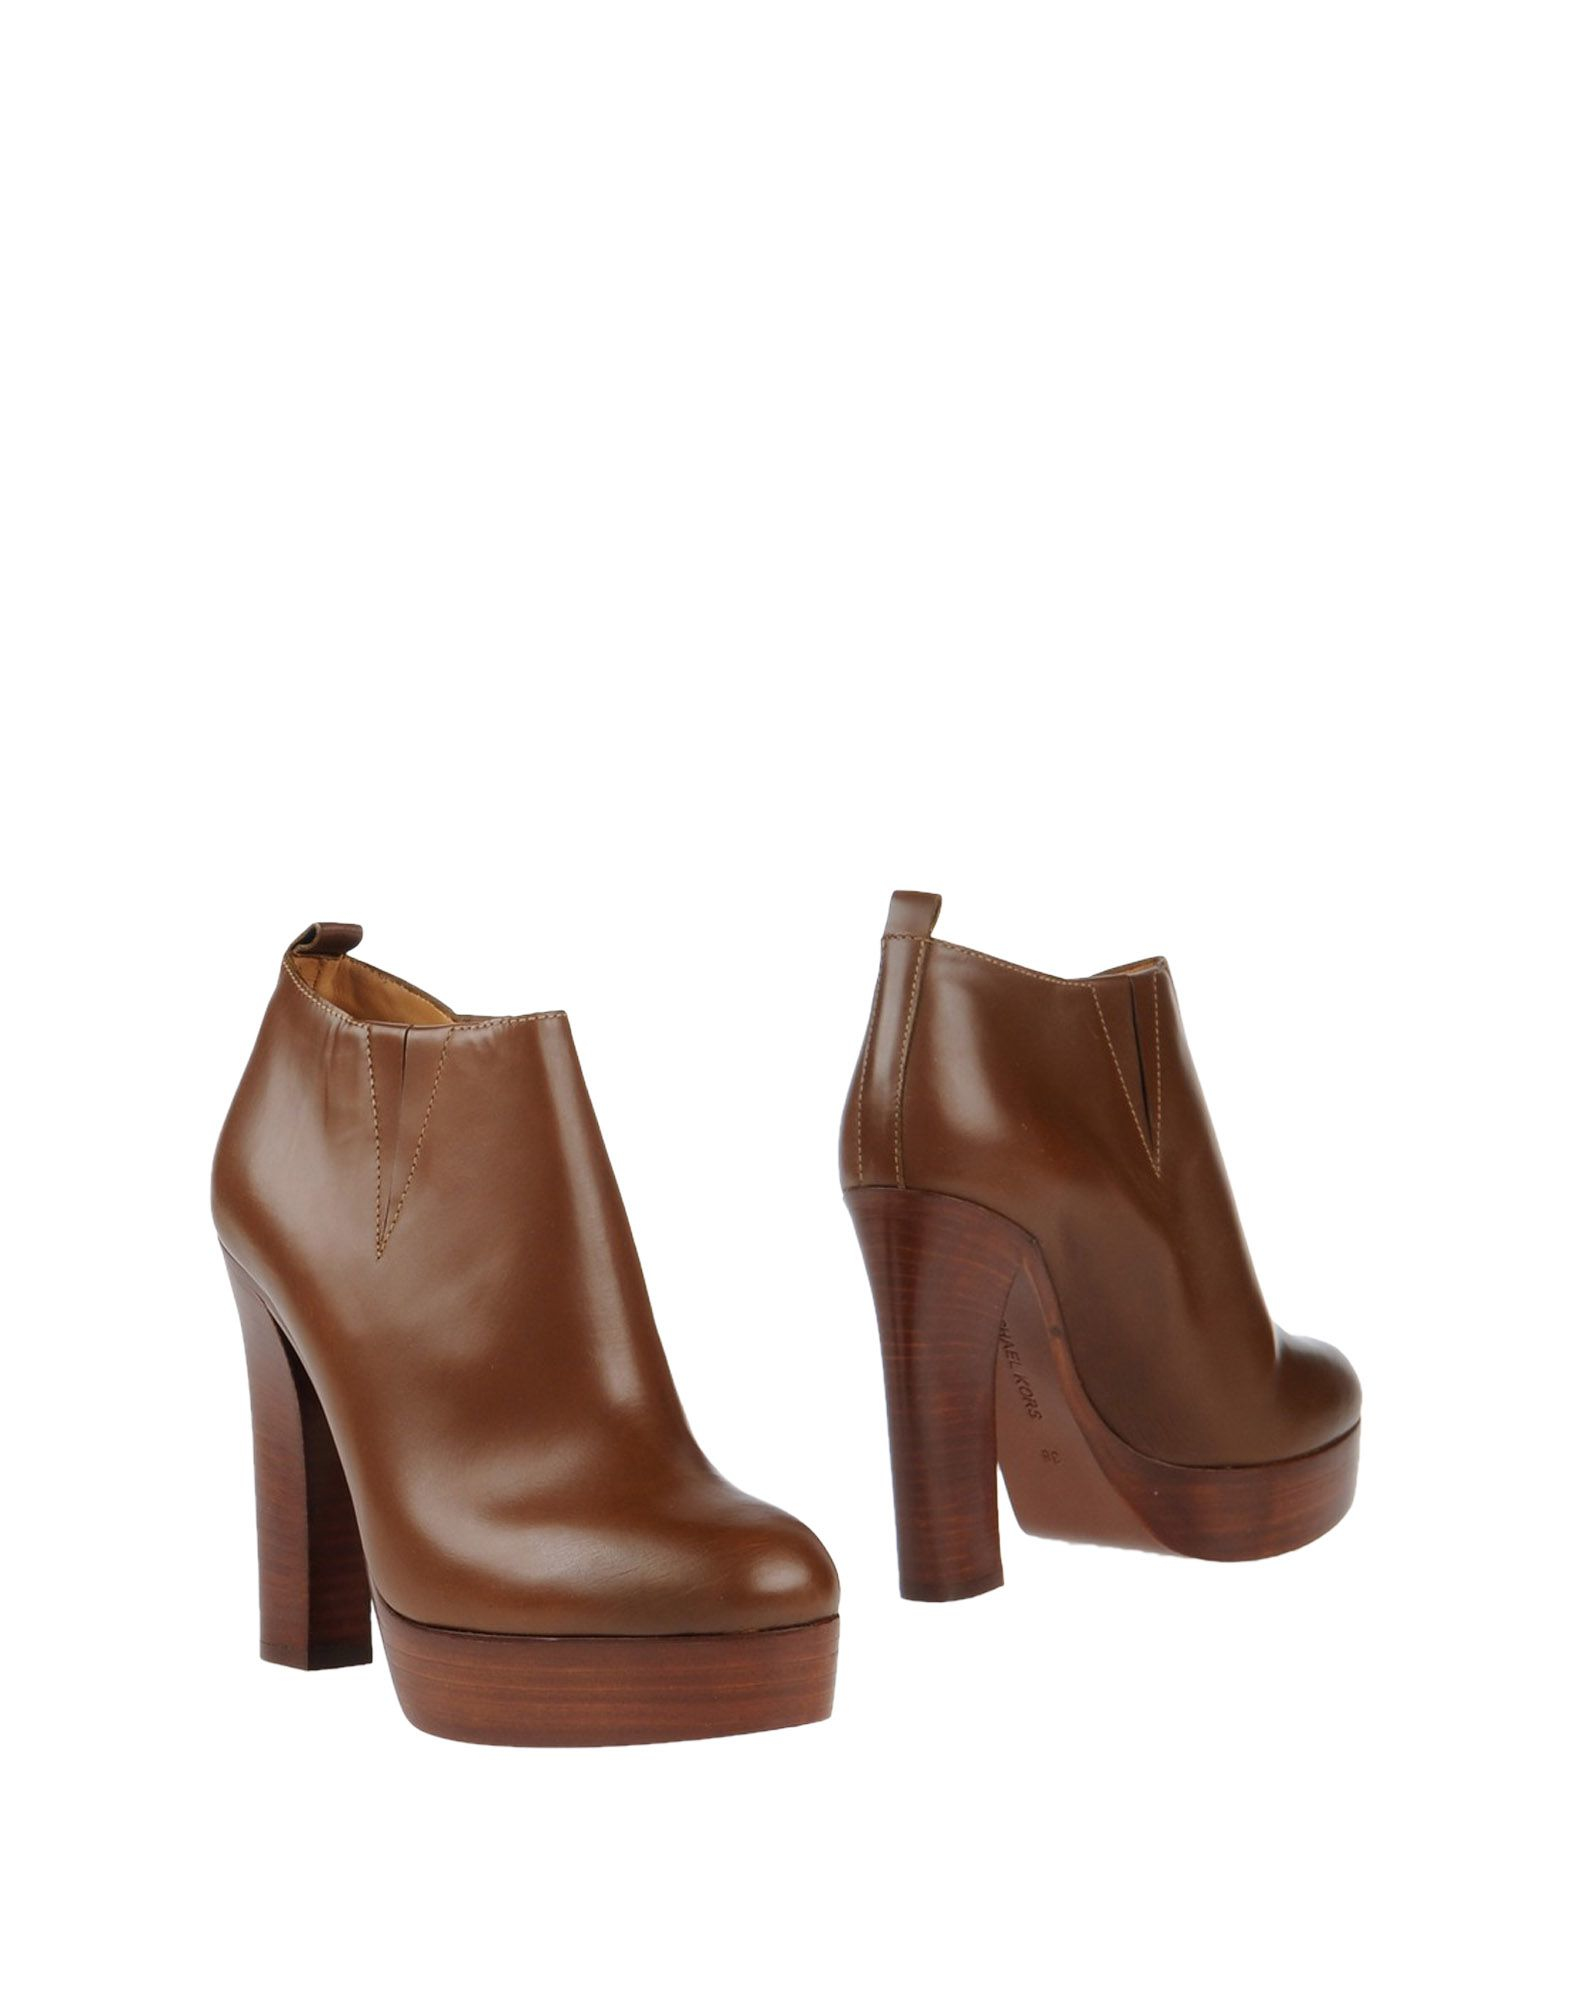 michael kors ankle boots in brown lyst male models picture